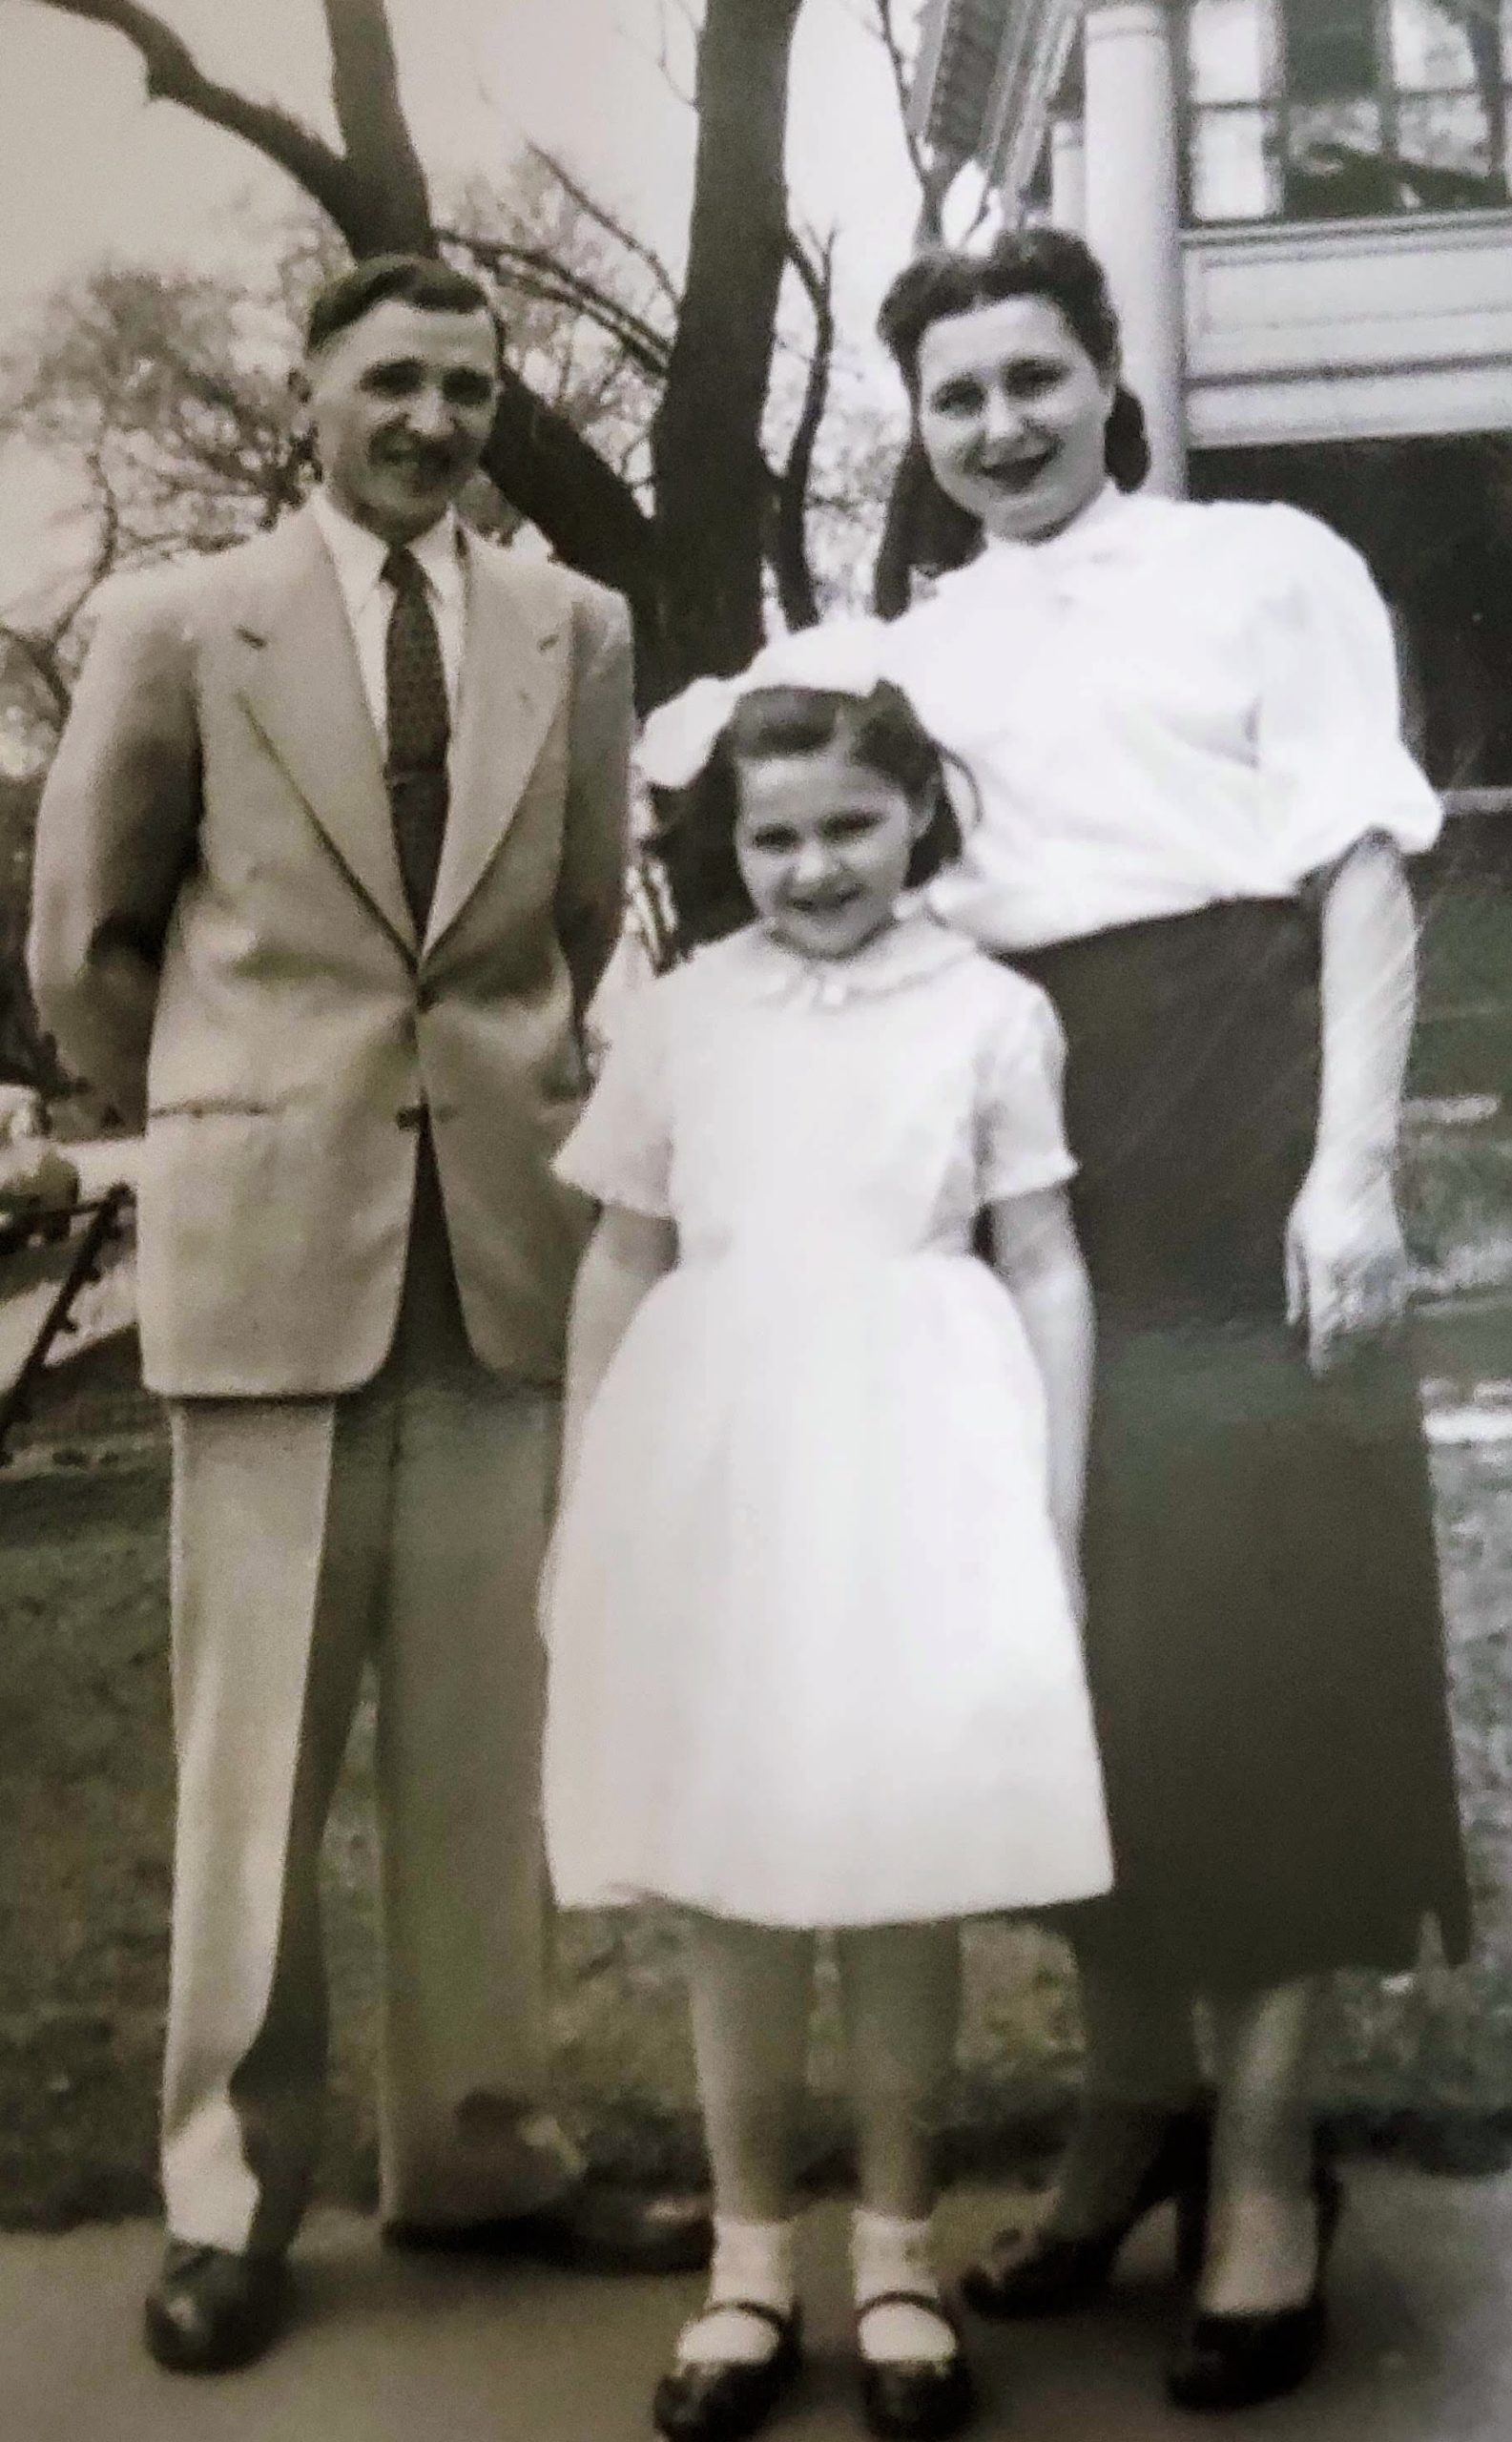 1953, Minneapolis: My grandfather Youry, my mother Lesya and my grandmother Maria